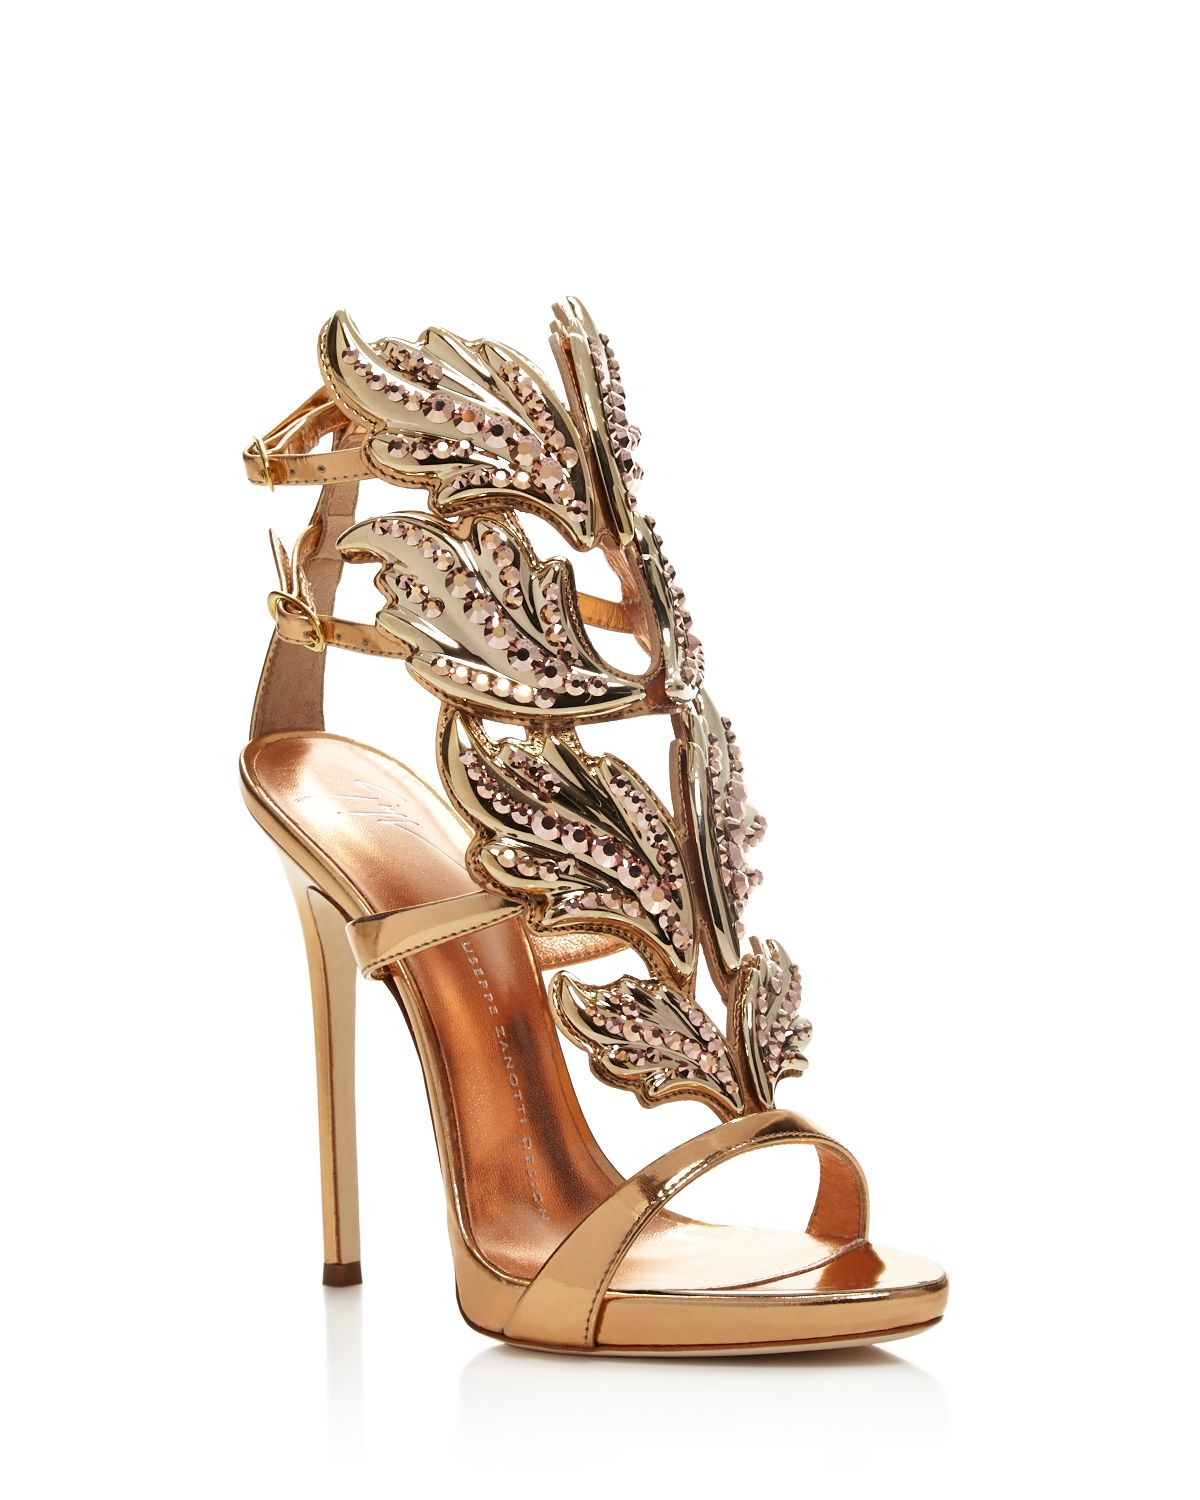 Women's Coline Cruel Embellished Wing High Heel Sandals by Giuseppe Zanotti